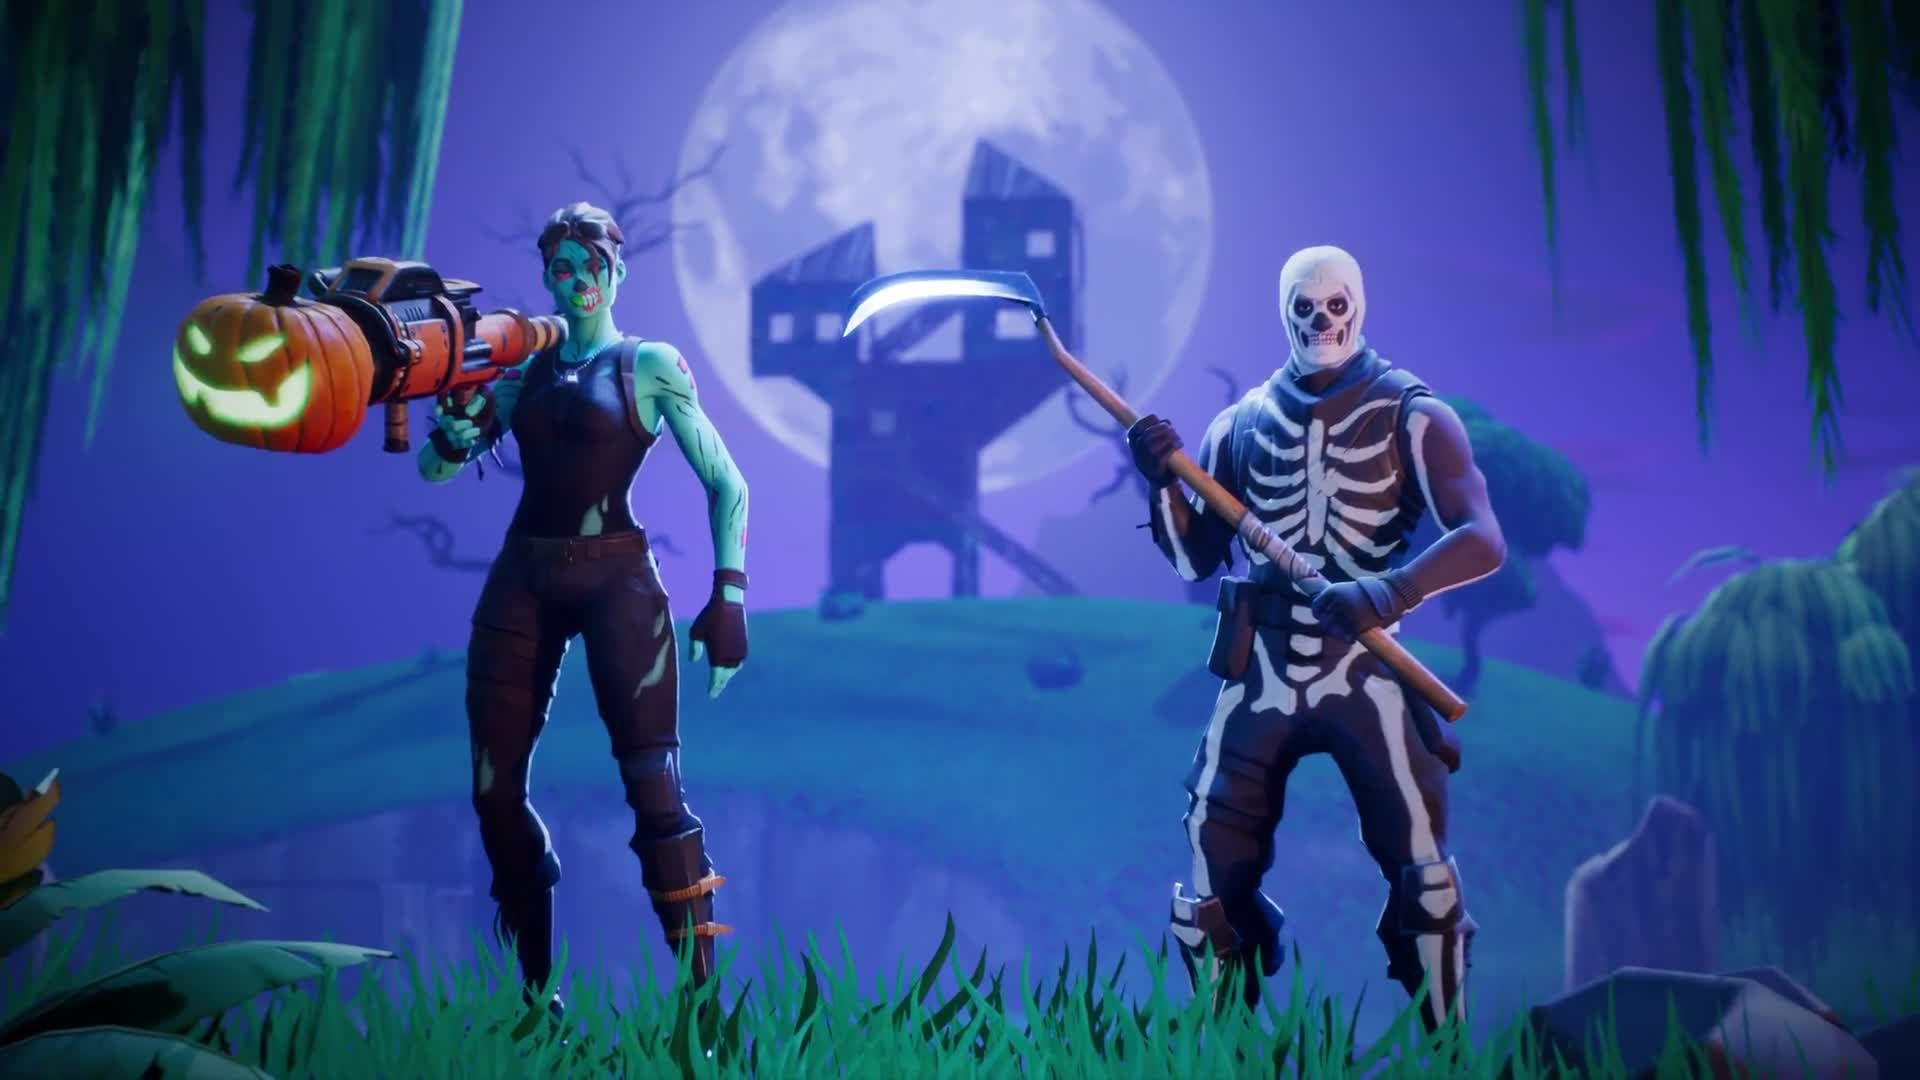 Fortnite Battle Royale Skins All Free And Premium Outfits Ghoul Trooper Background Images Wallpapers Fortnite